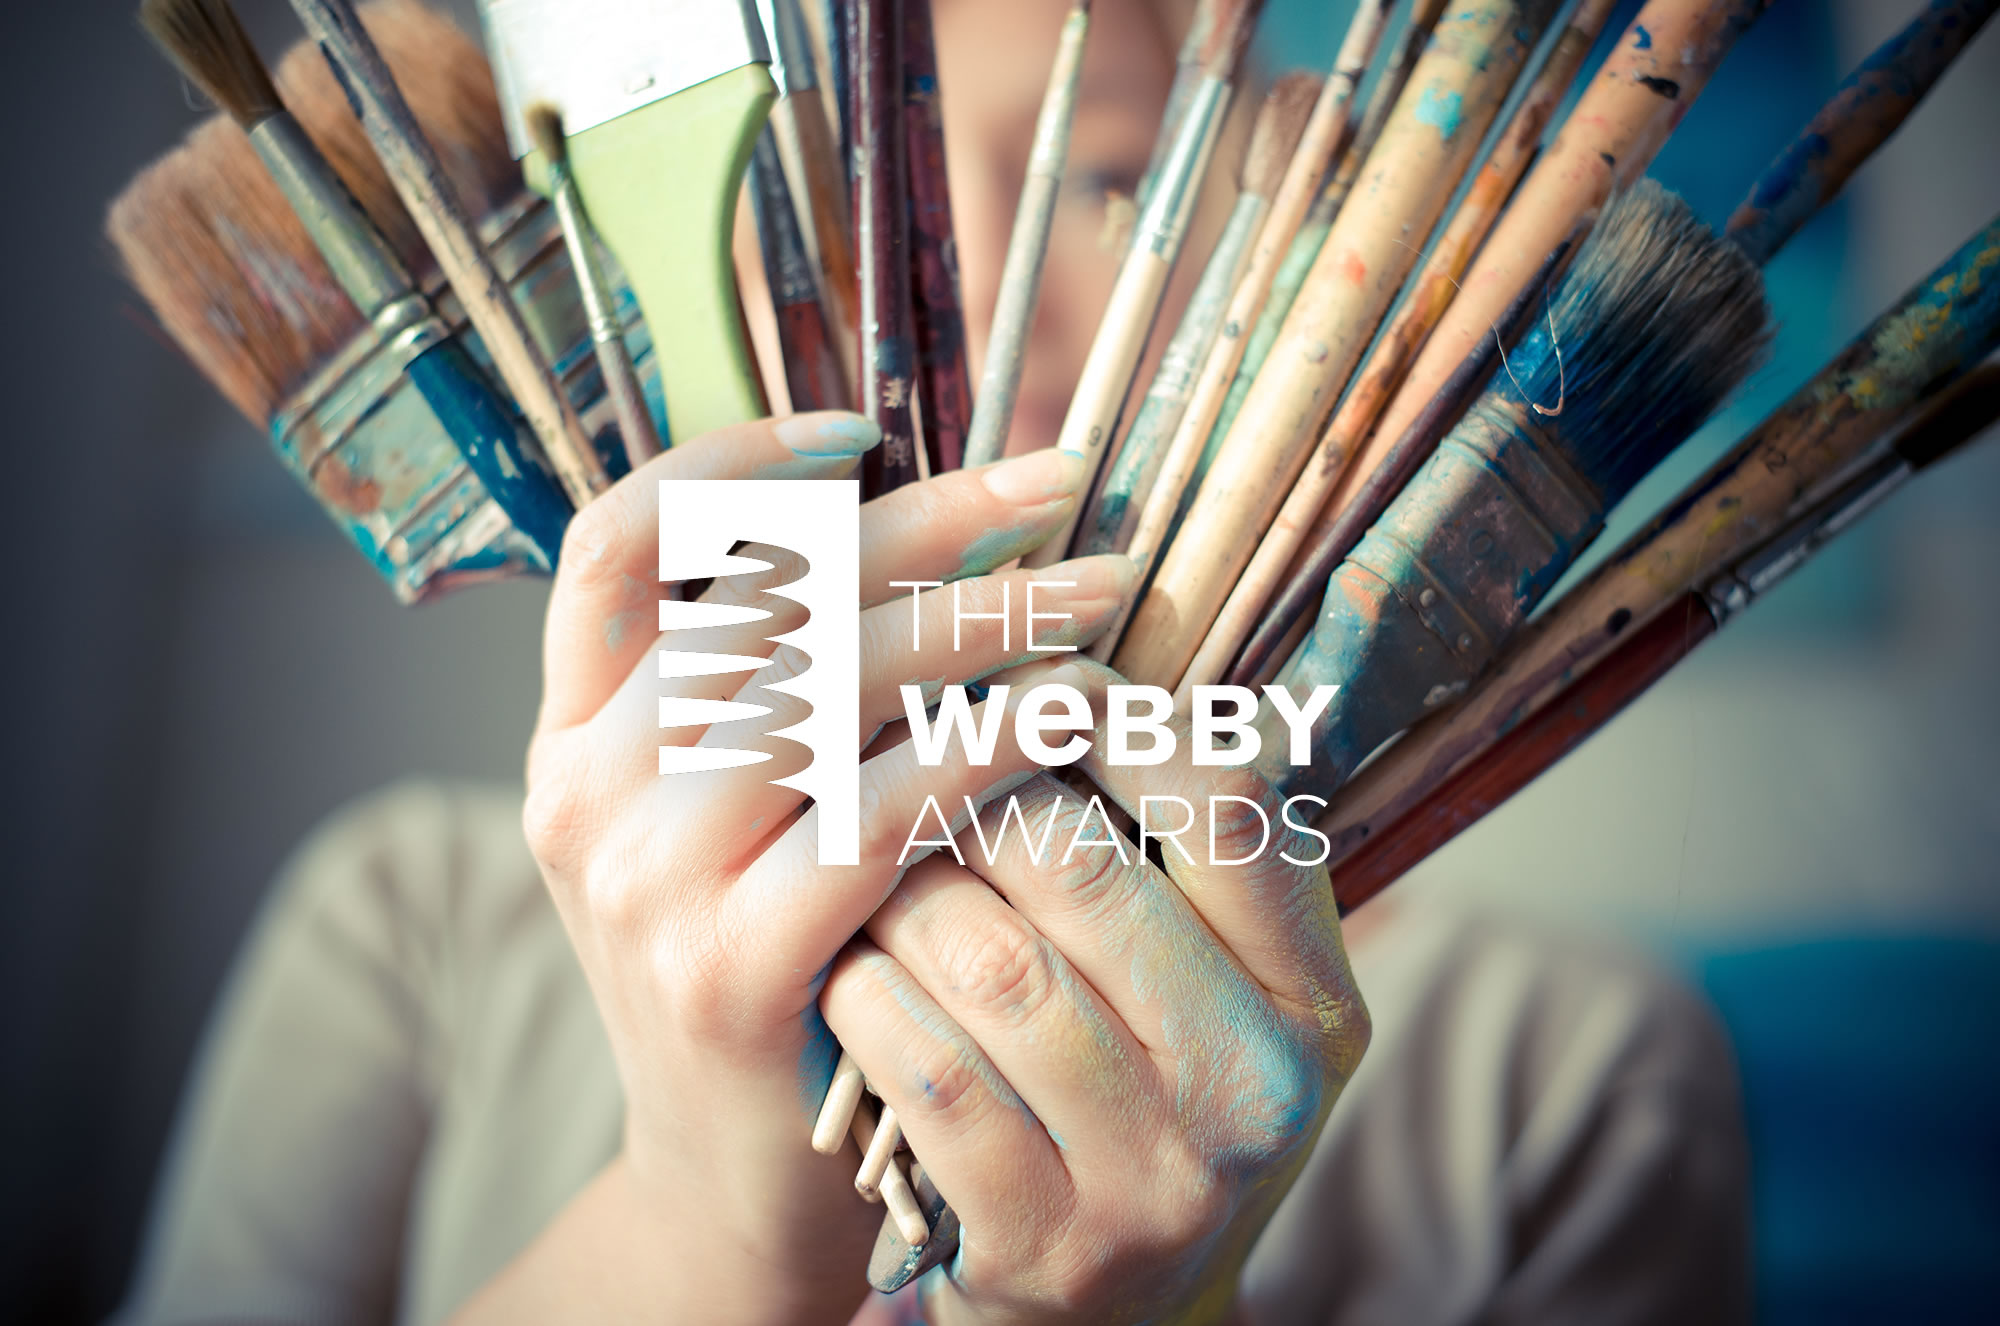 Illusion Wins a Webby Award